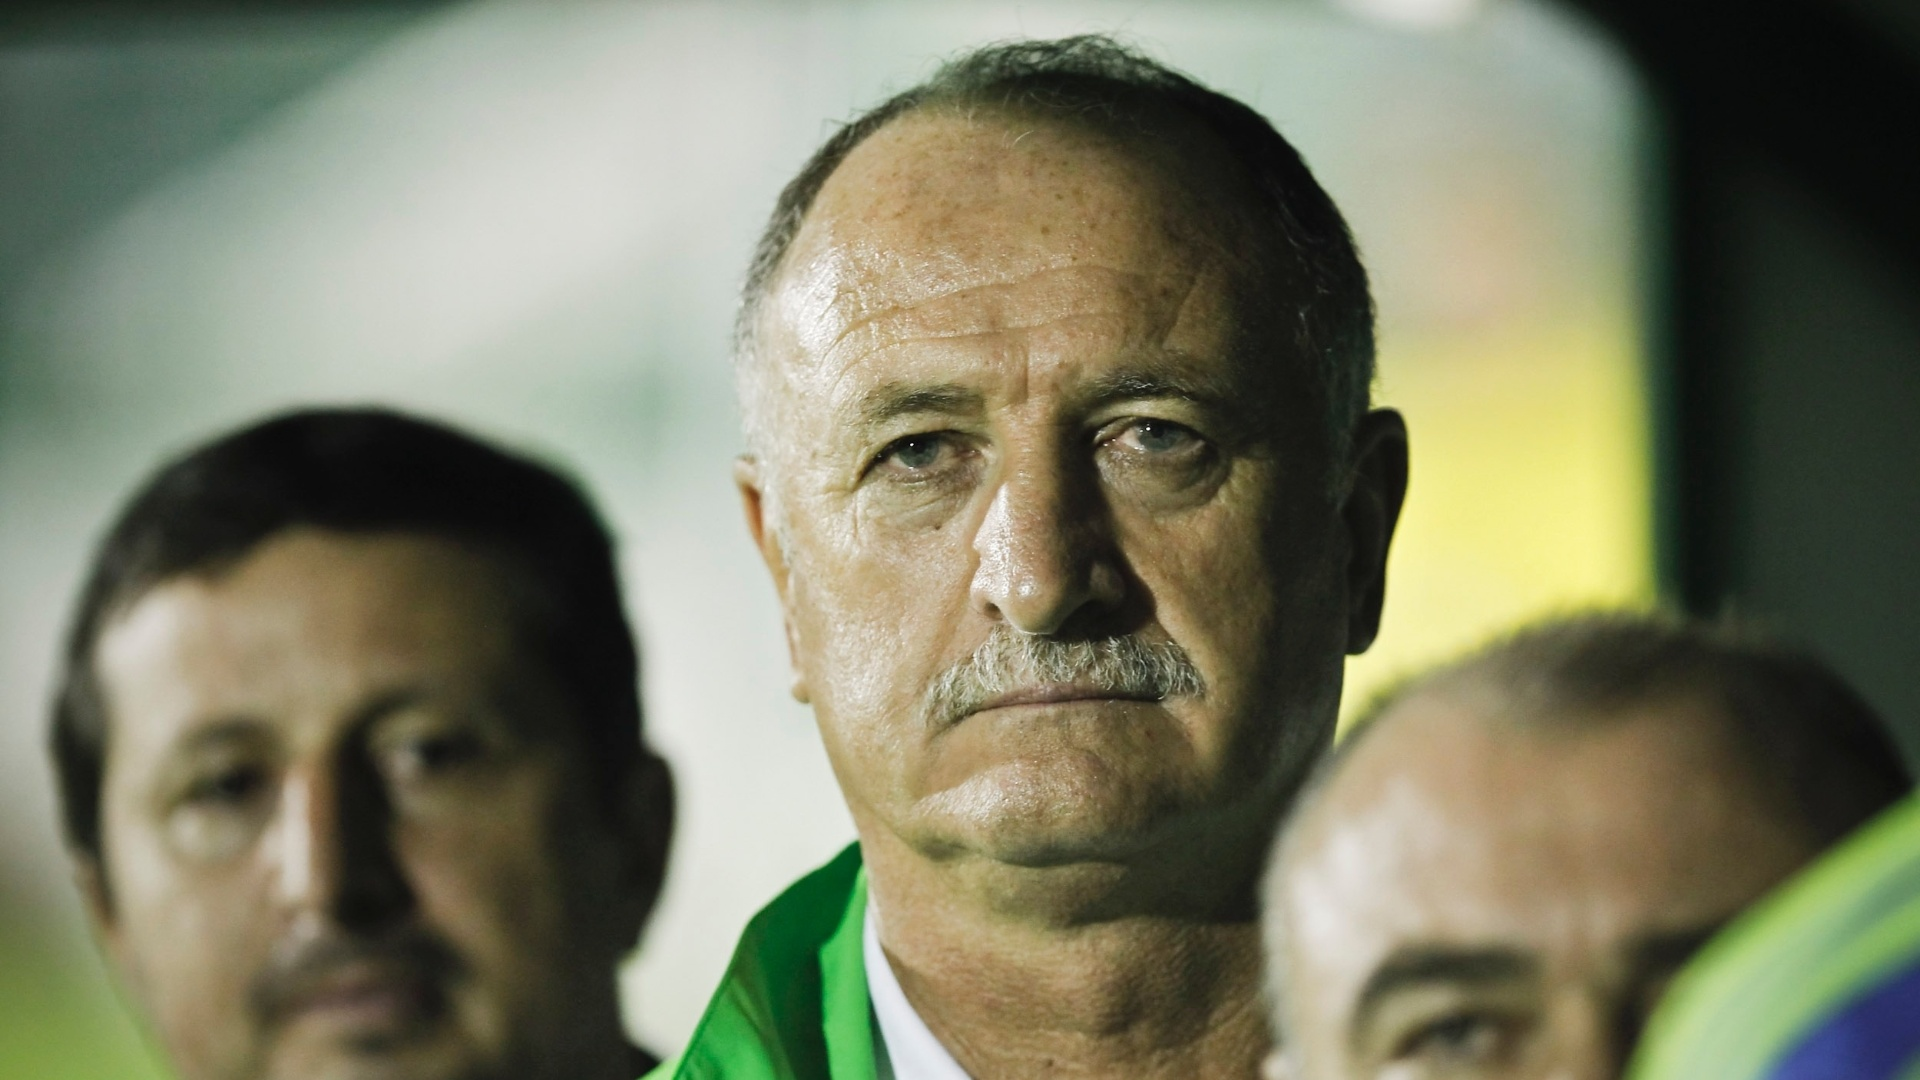 Luiz Felipe Scolari aguarda incio da partida contra Guarani